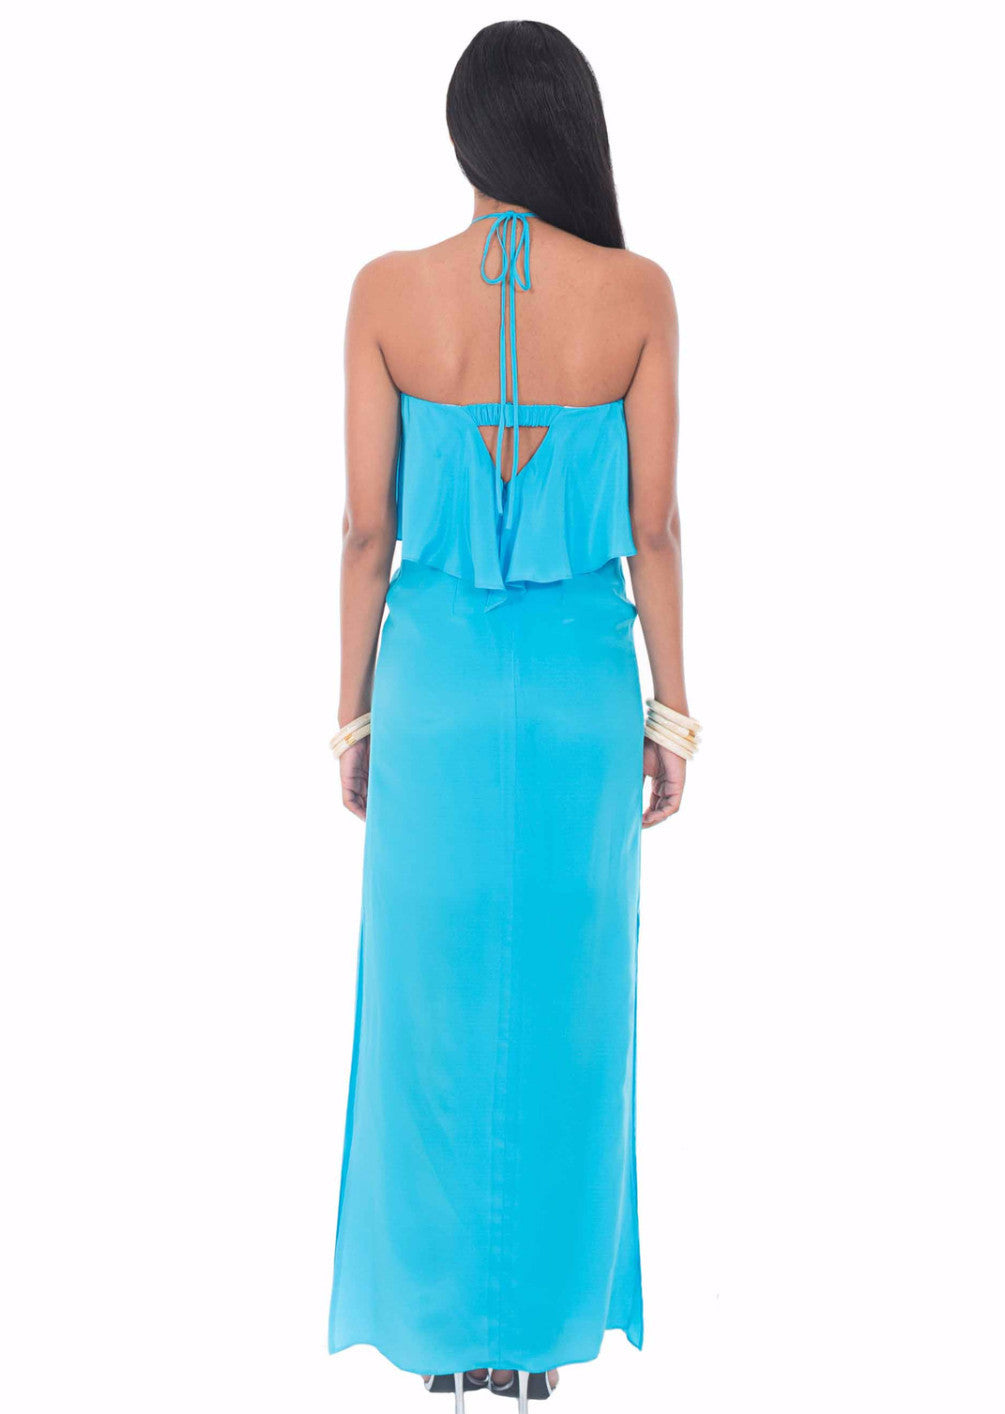 In Deep Blue Silk Ruffle Maxi Dress by Isy B. Design - Back View on Model